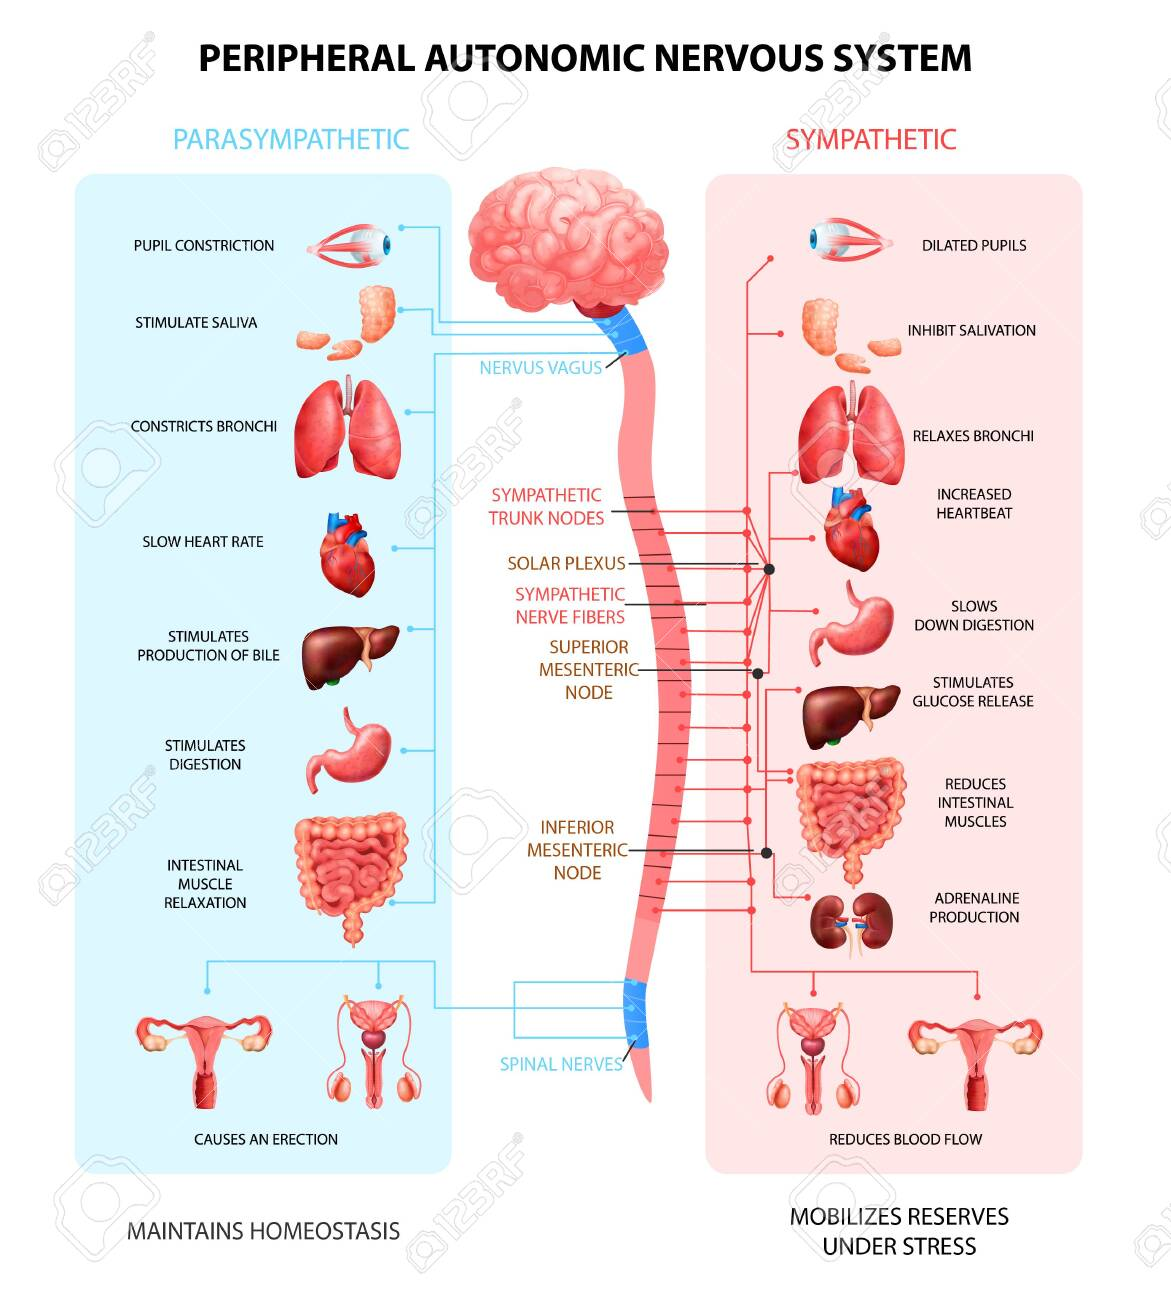 Human peripheral autonomic nervous system with sympathetic spinal cord neurons signal communication realistic colorful scheme vector illustration - 145195170